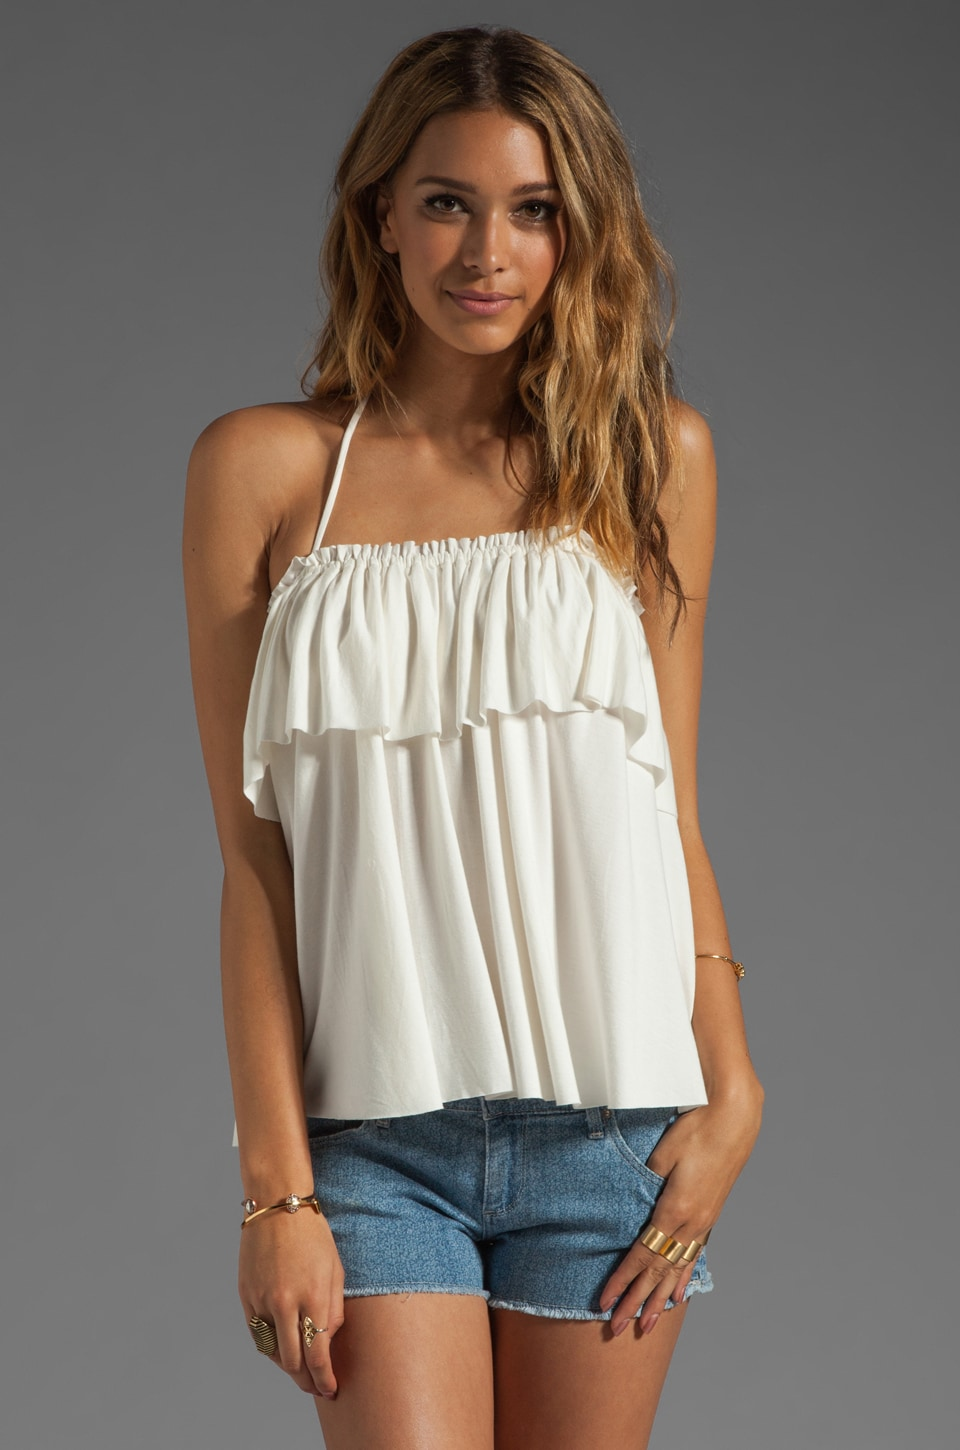 Rachel Pally Kao Halter Top in White